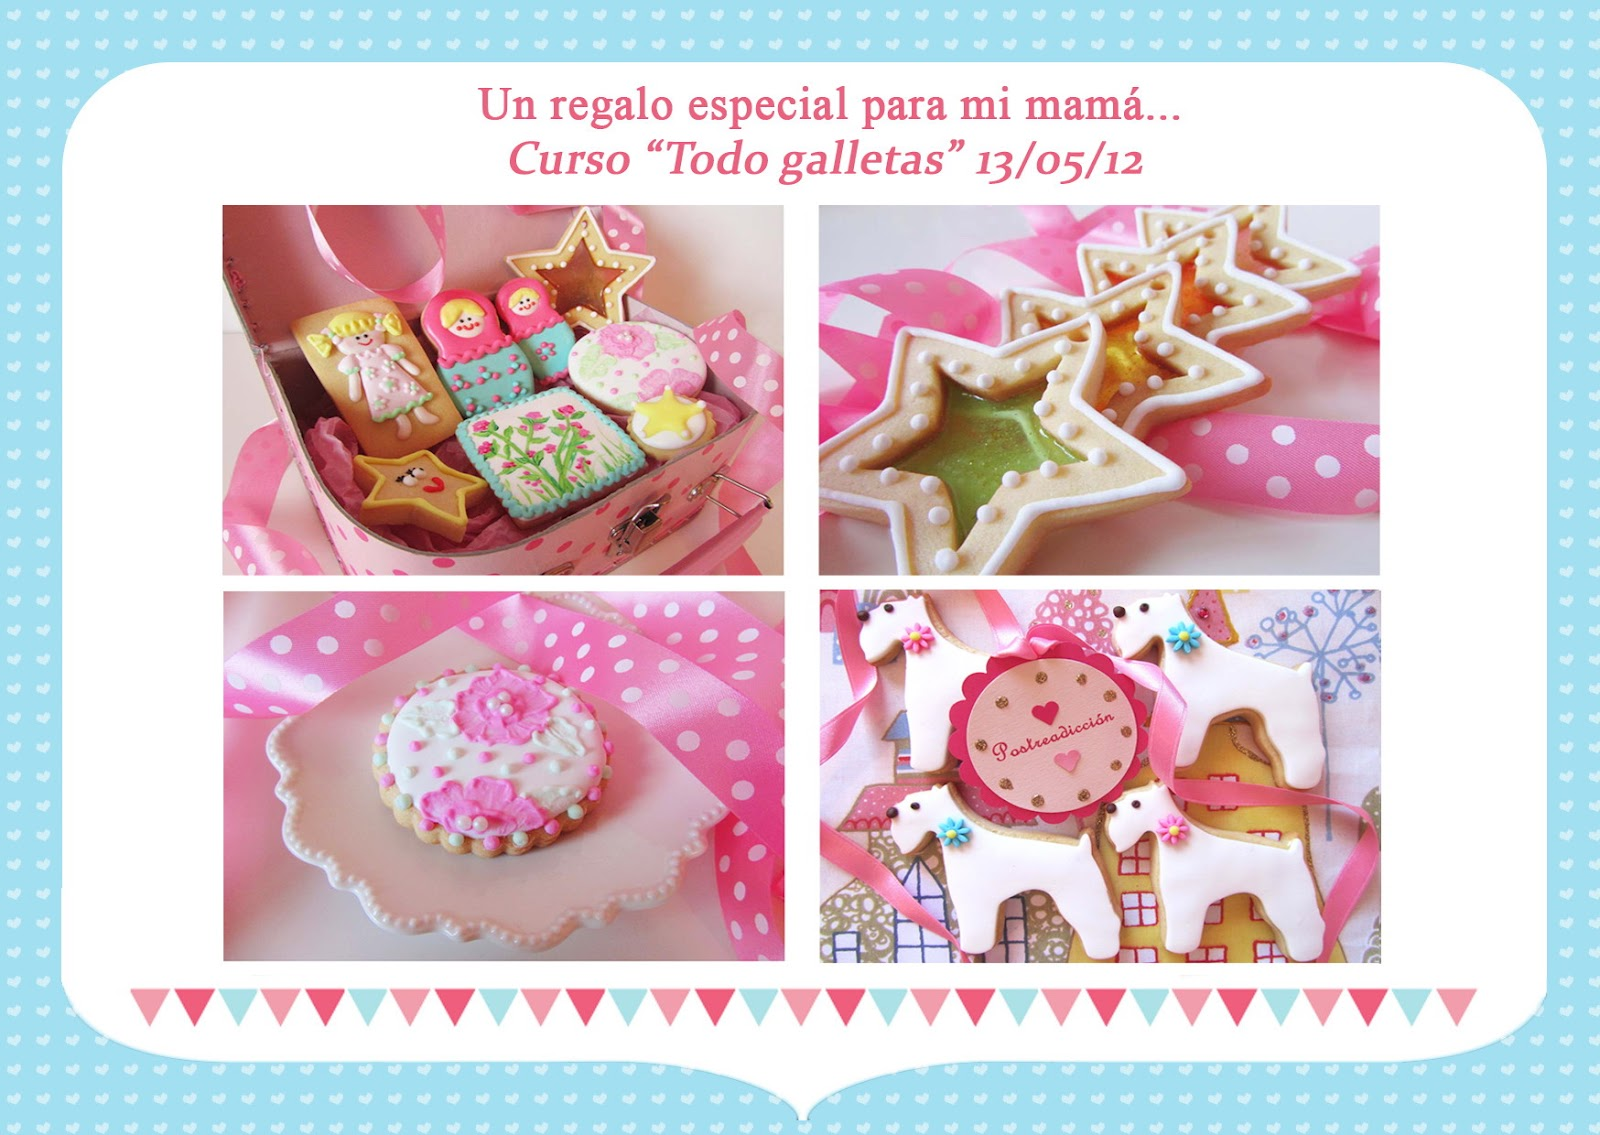 Cursos Galletas Decoradas Madrid Love Purpurina Feliz Día De La Madre